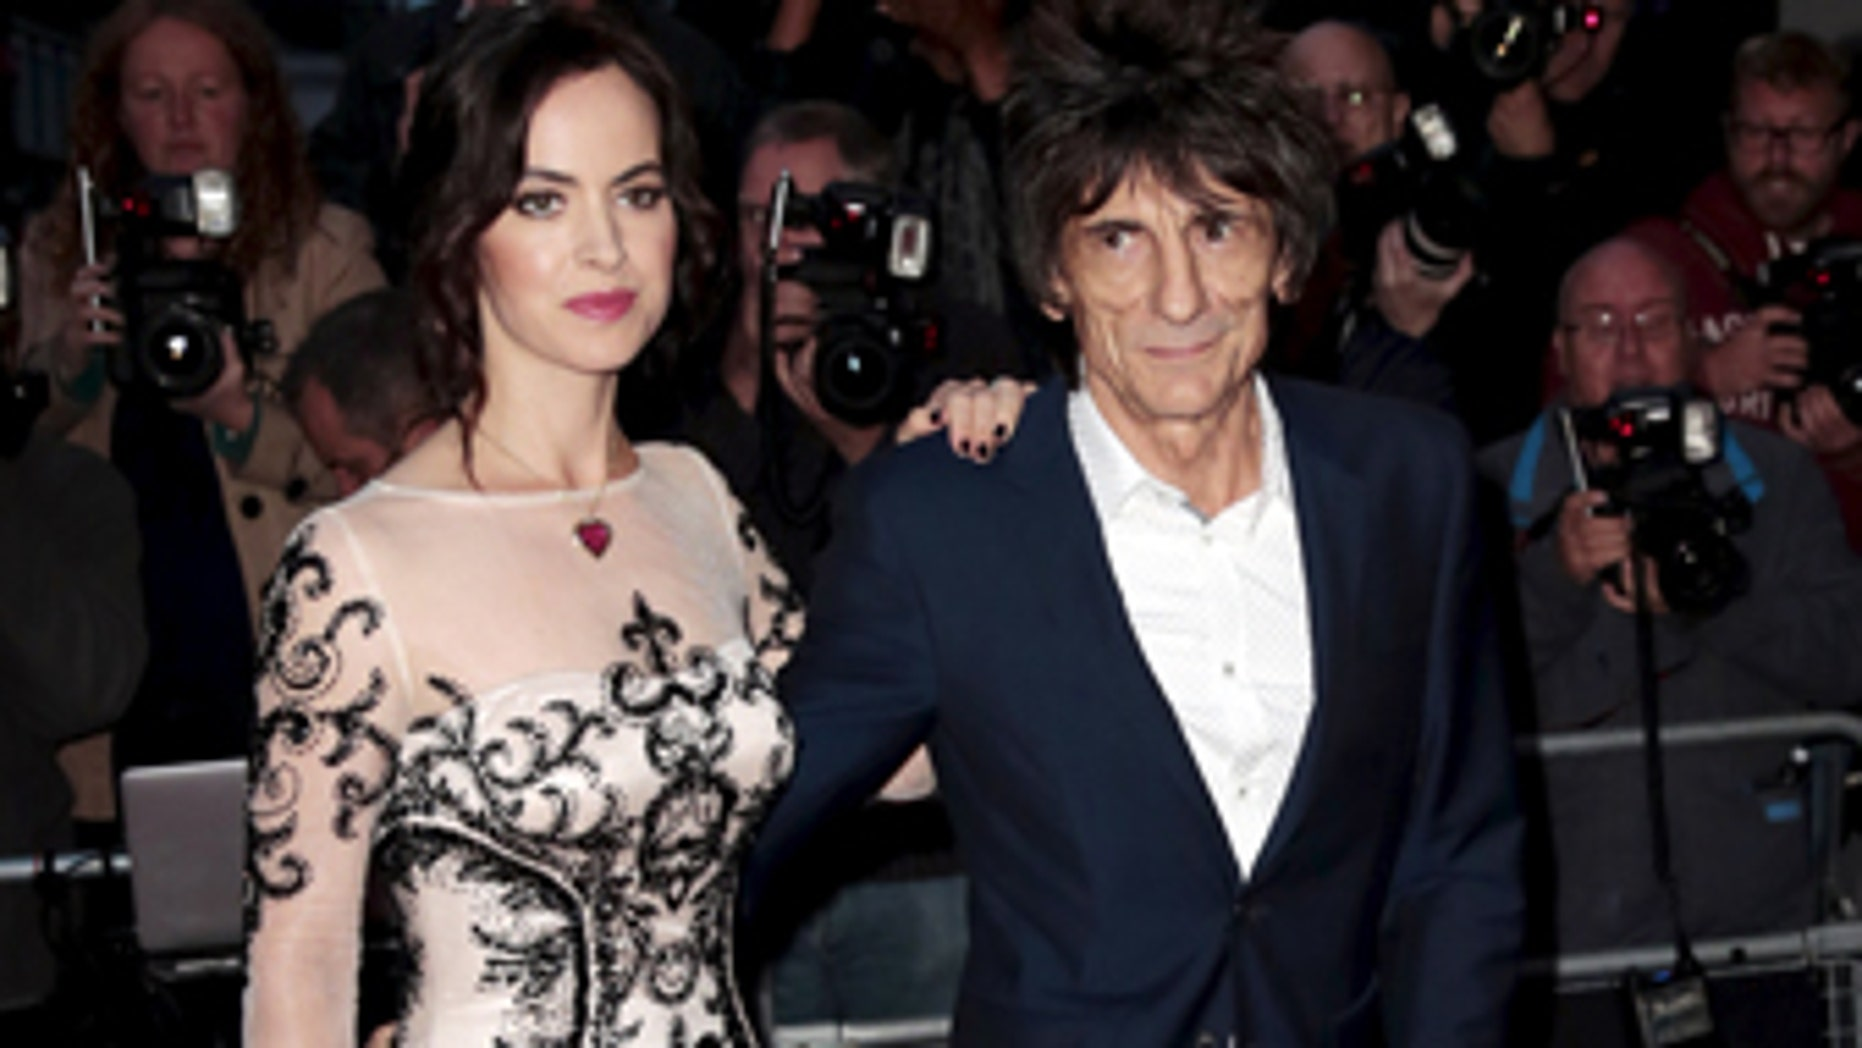 Ronnie Wood of the Rolling Stones and his wife Sally Wood arrive for the GQ Men of the Year Awards at the Royal Opera House in London, Britain September 8, 2015.